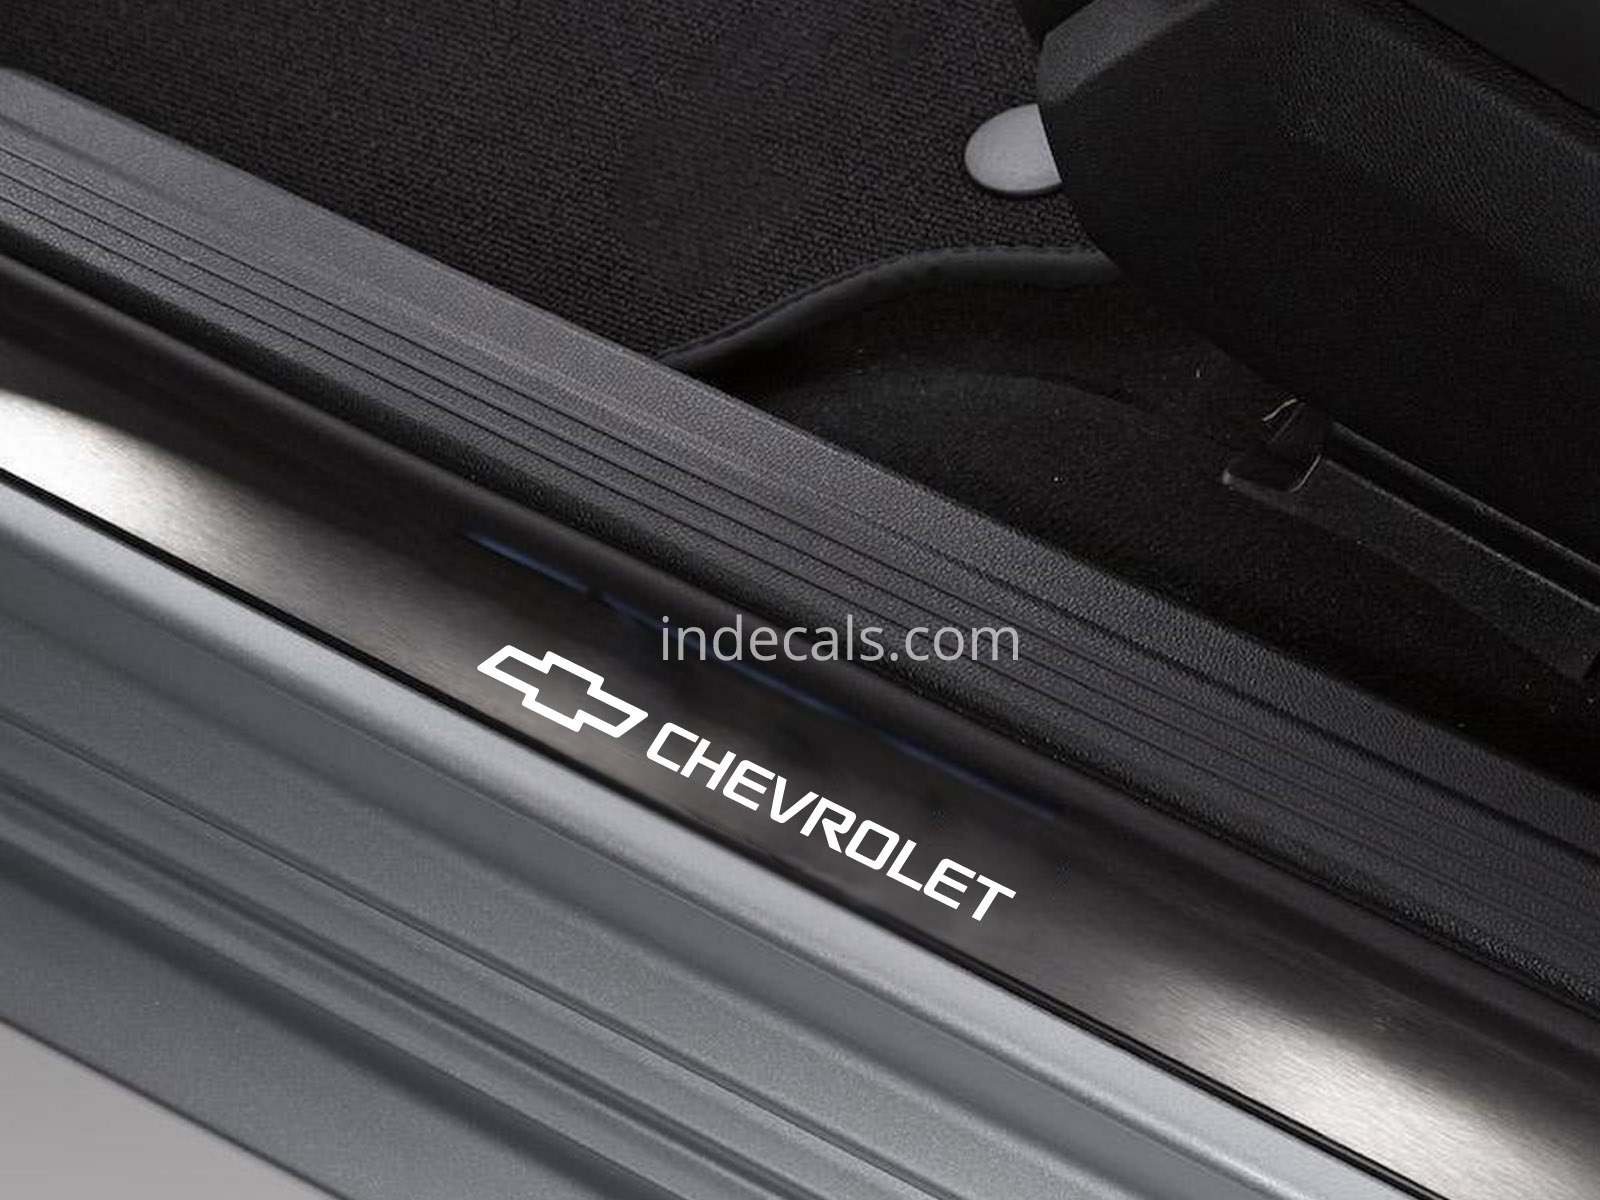 6 x Chrysler Stickers for Door Sills - White